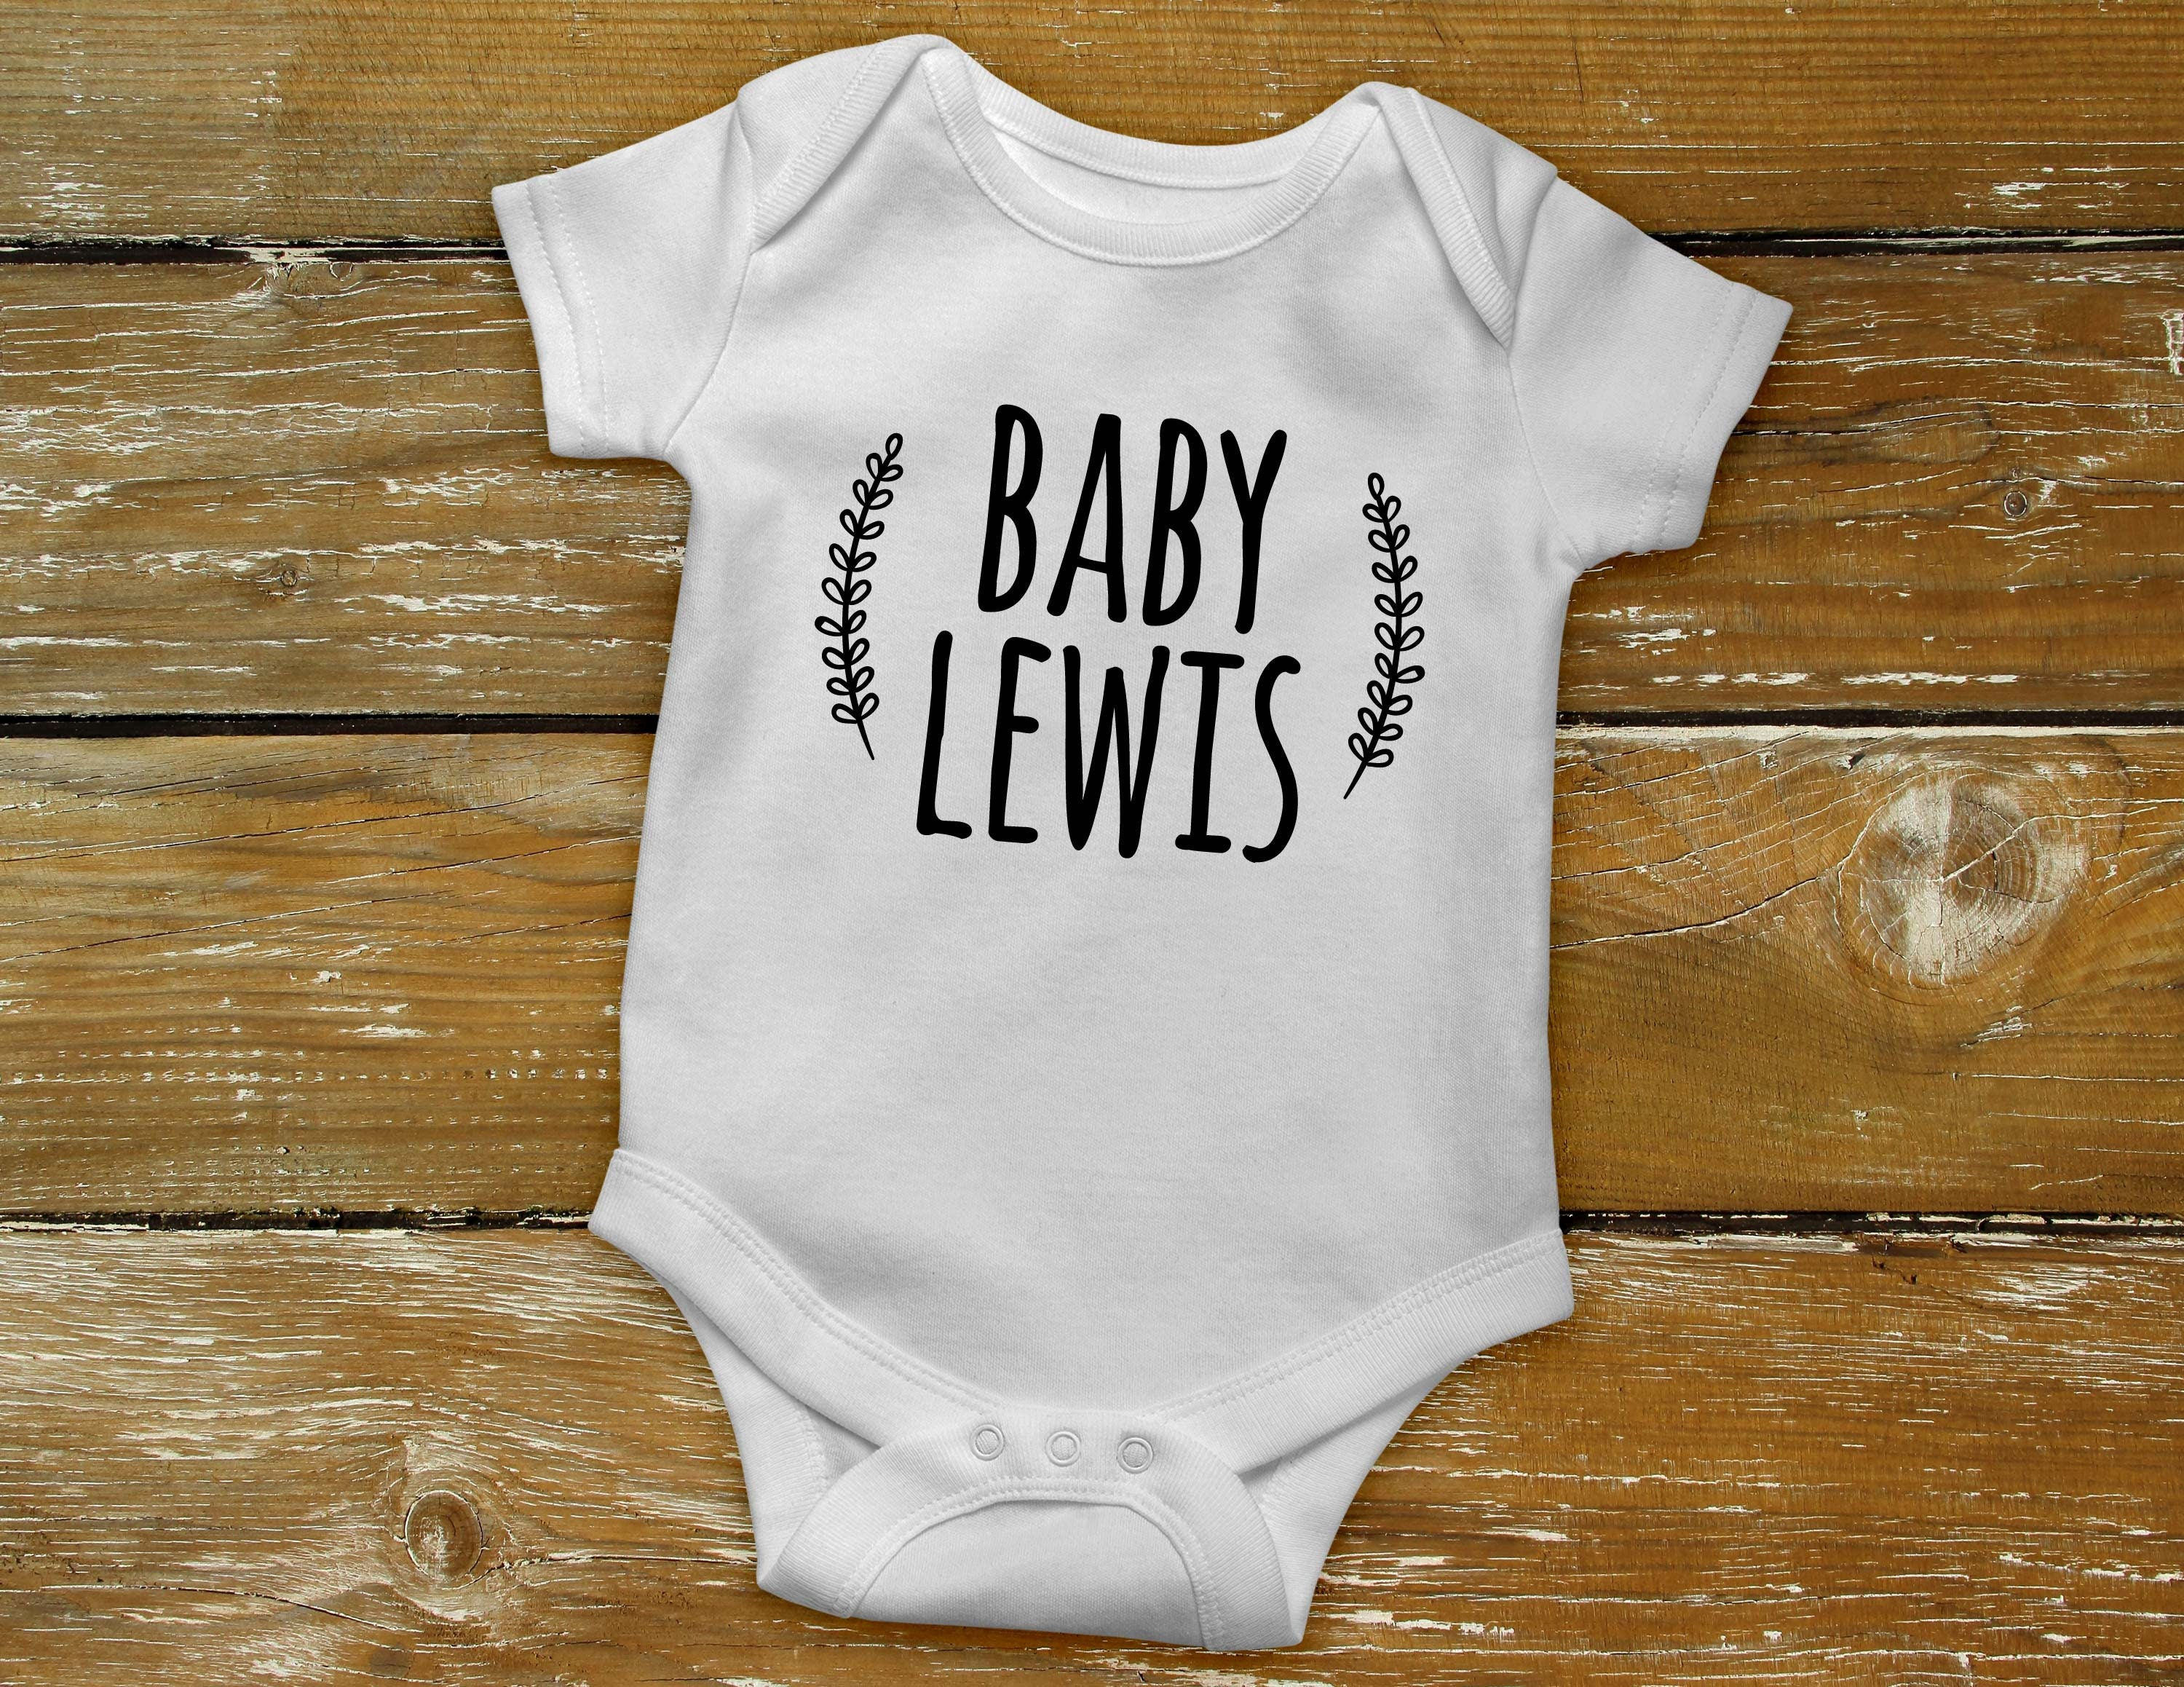 Surname /& Date Reveal Romper Personalised Pregnancy Announcement Baby Bodysuit